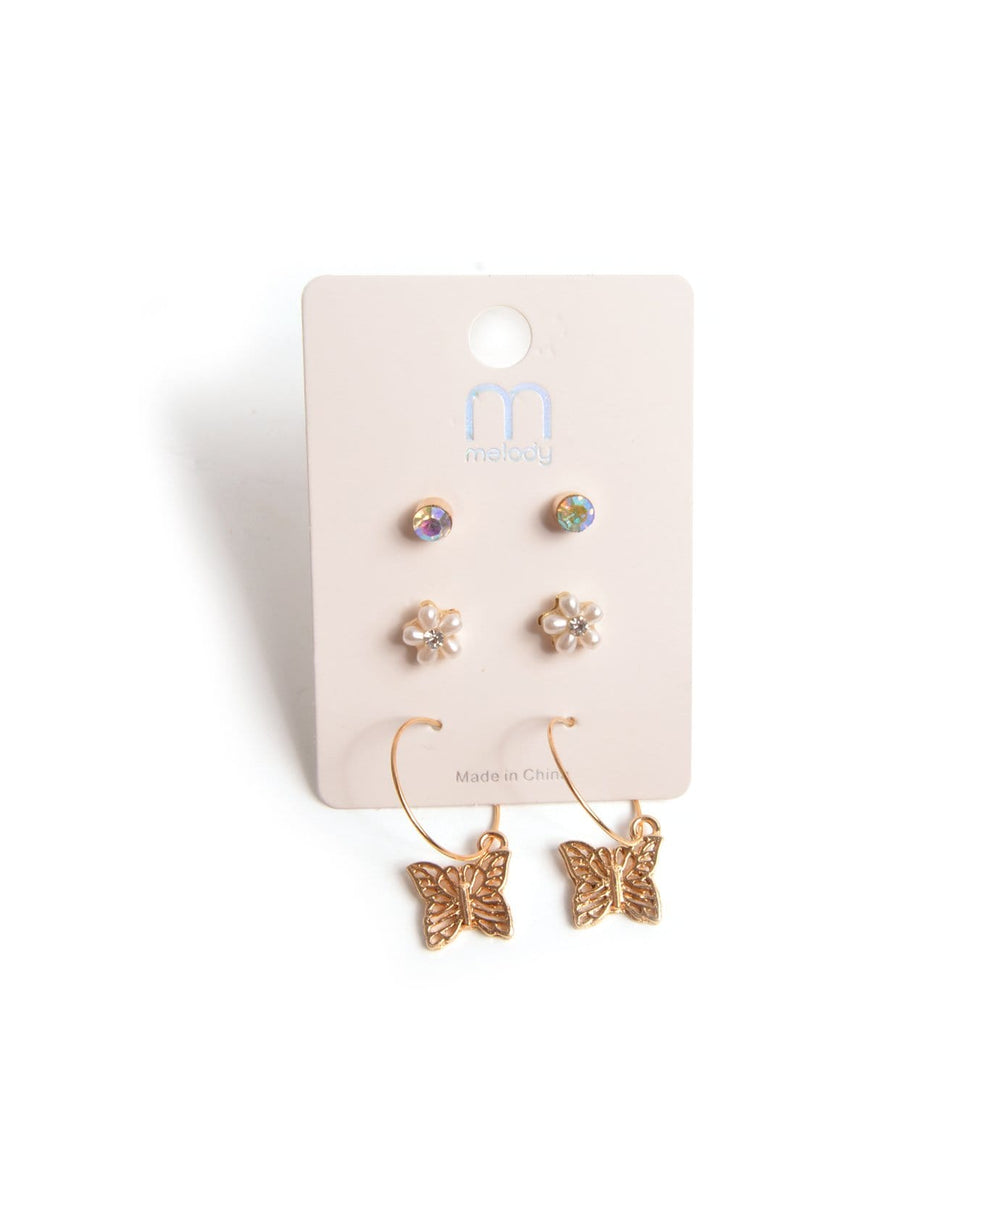 Free Spirit Earring Set